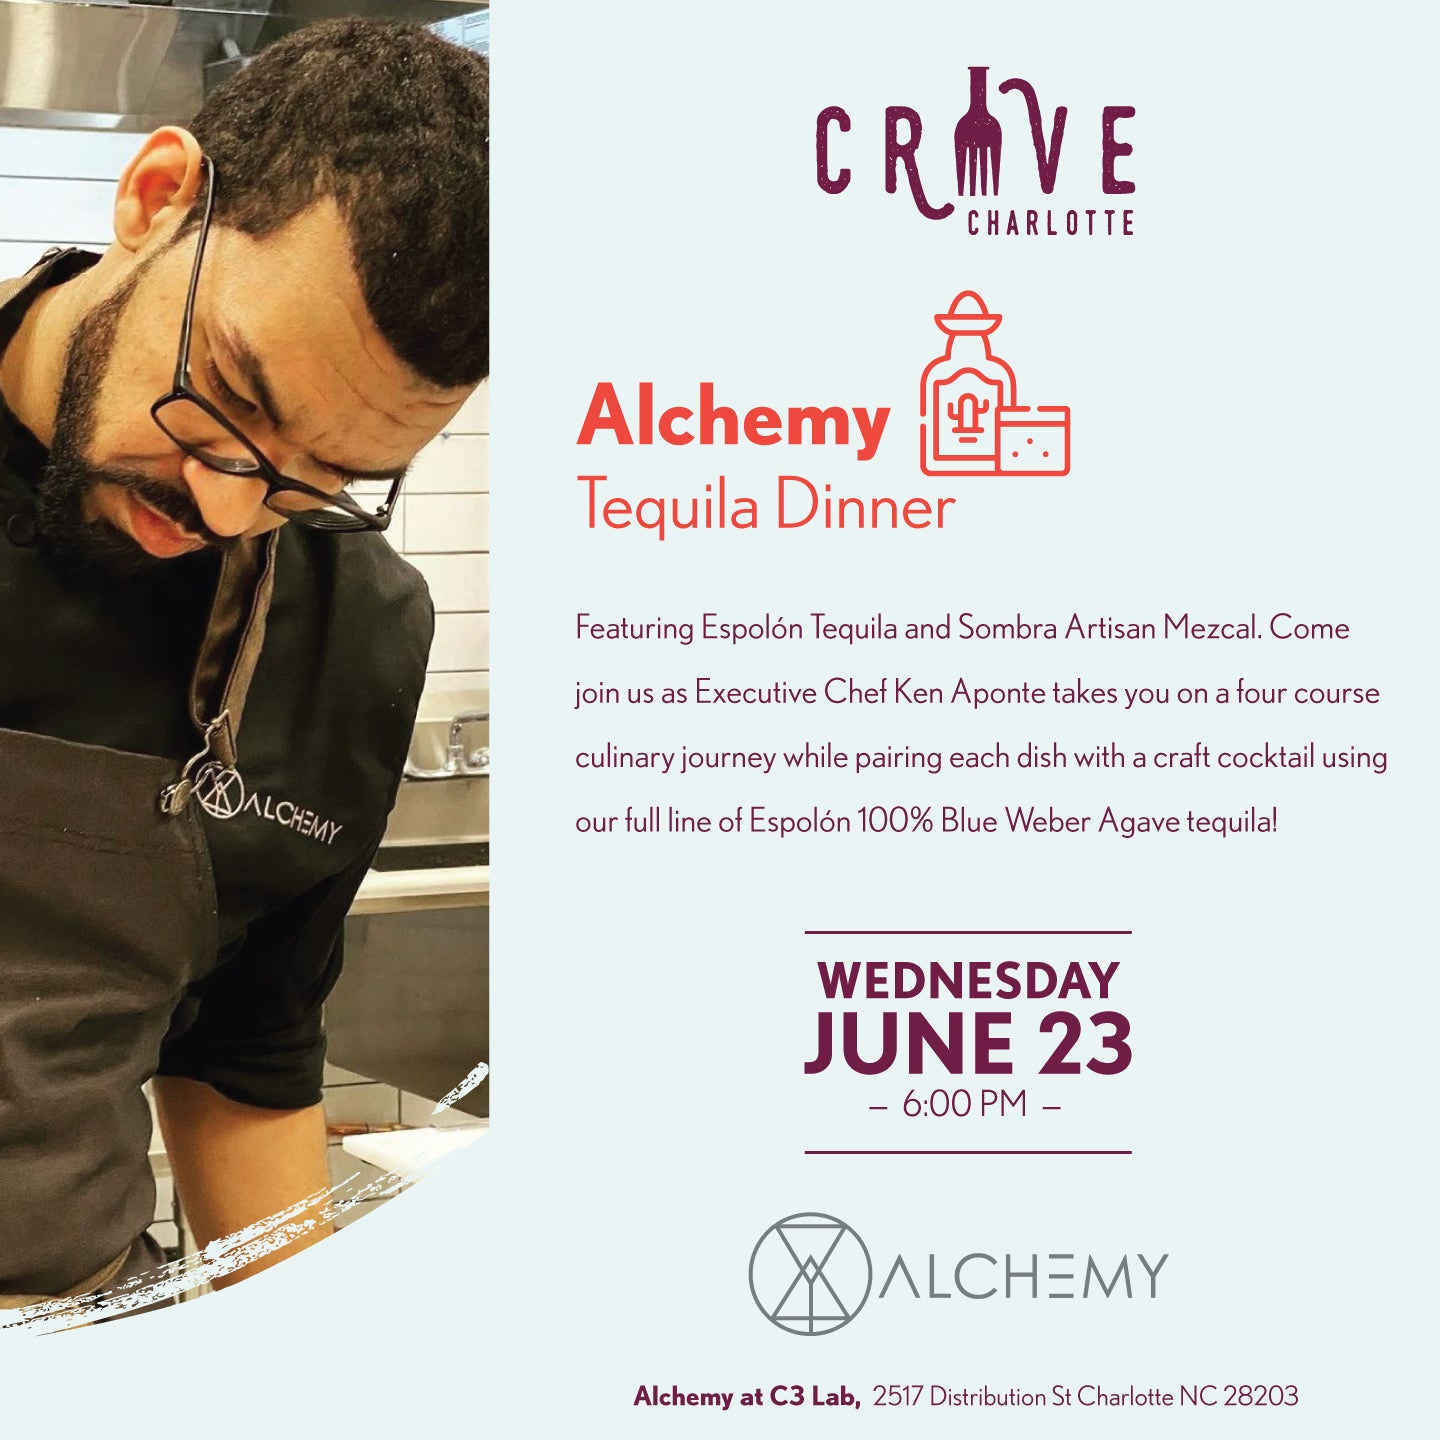 More Info for Crave Charlotte - Alchemy Tequila Dinner - Featuring Espolon Tequila and Somra Artisan Mezcal